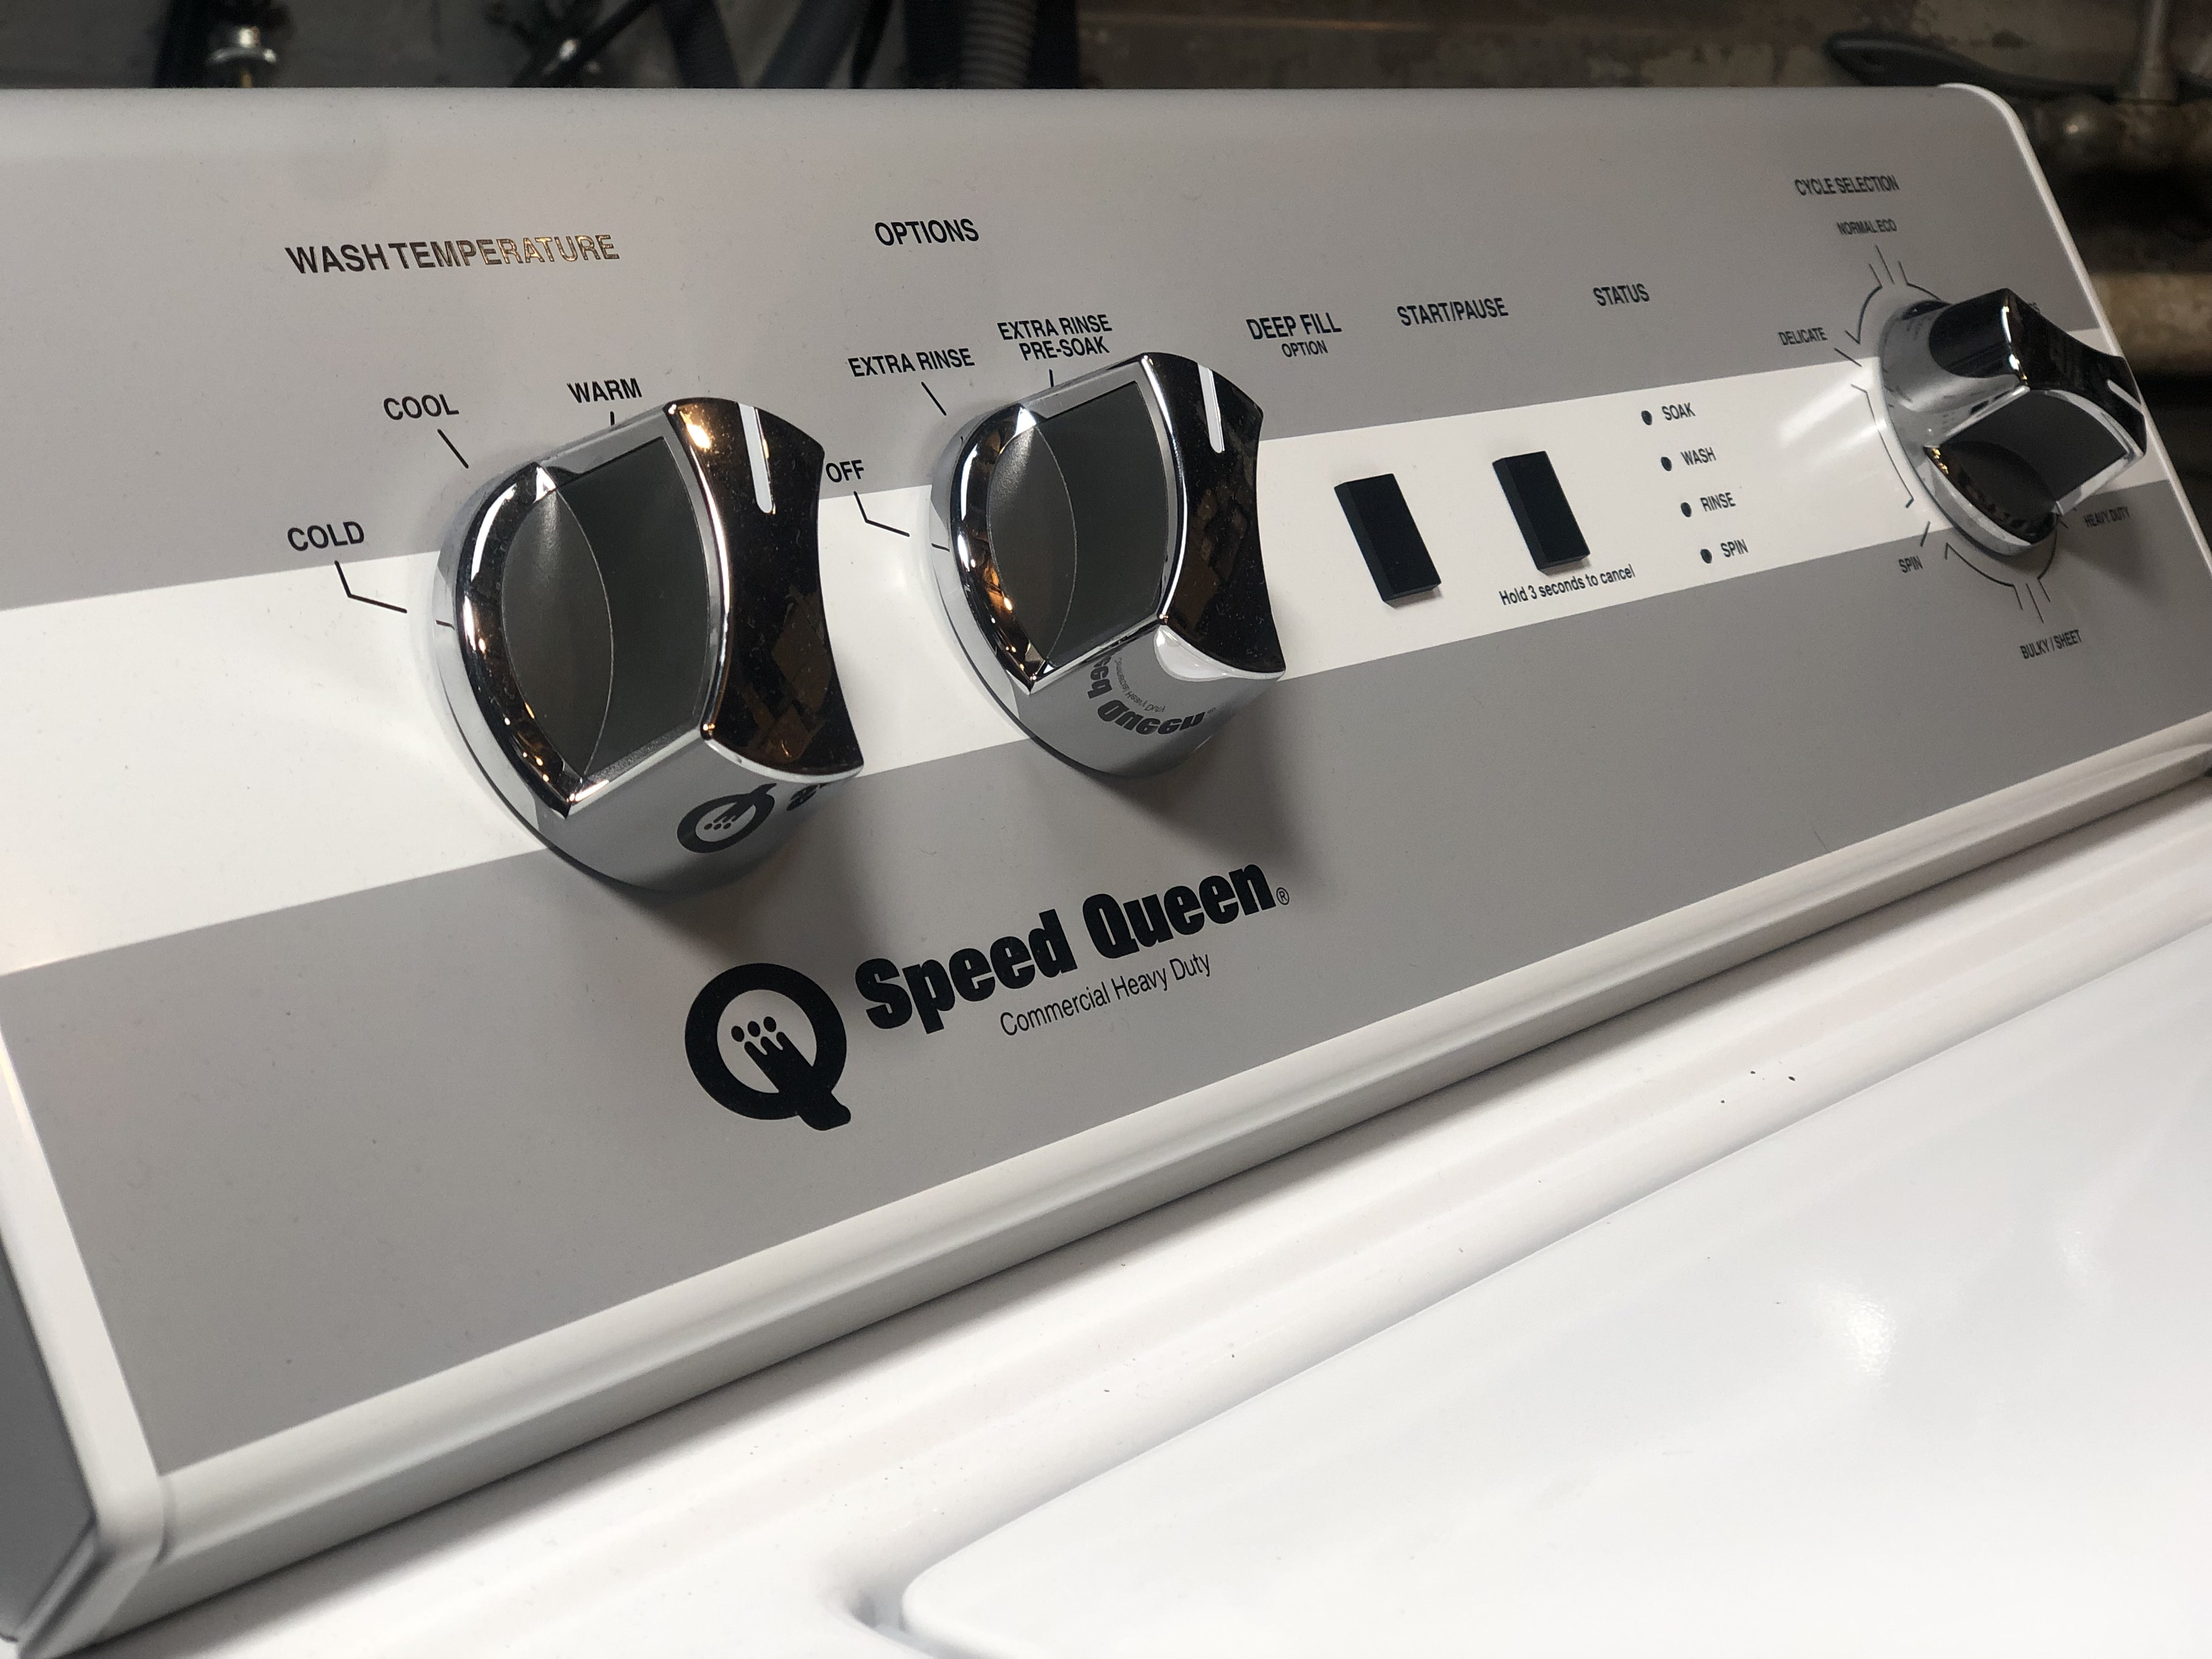 2019 Speed Queen Washer TC5000WN AWN632SP116TW01 - Lorain